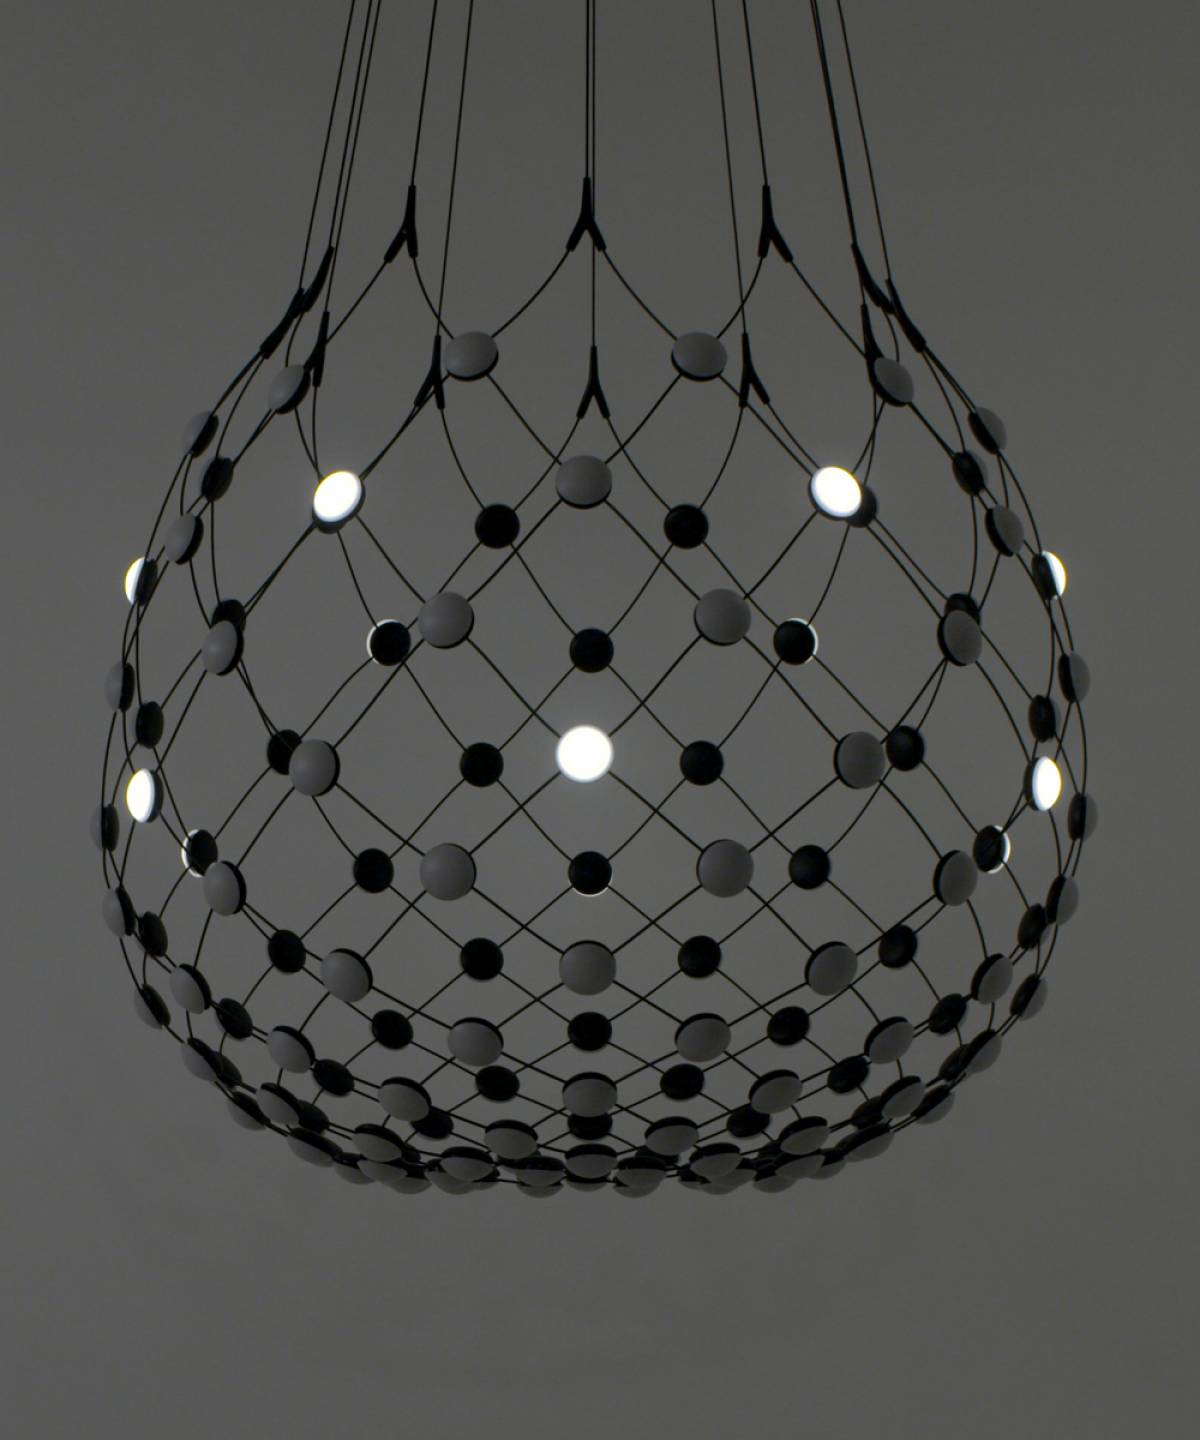 6 Mesh wireless lamp Luceplan